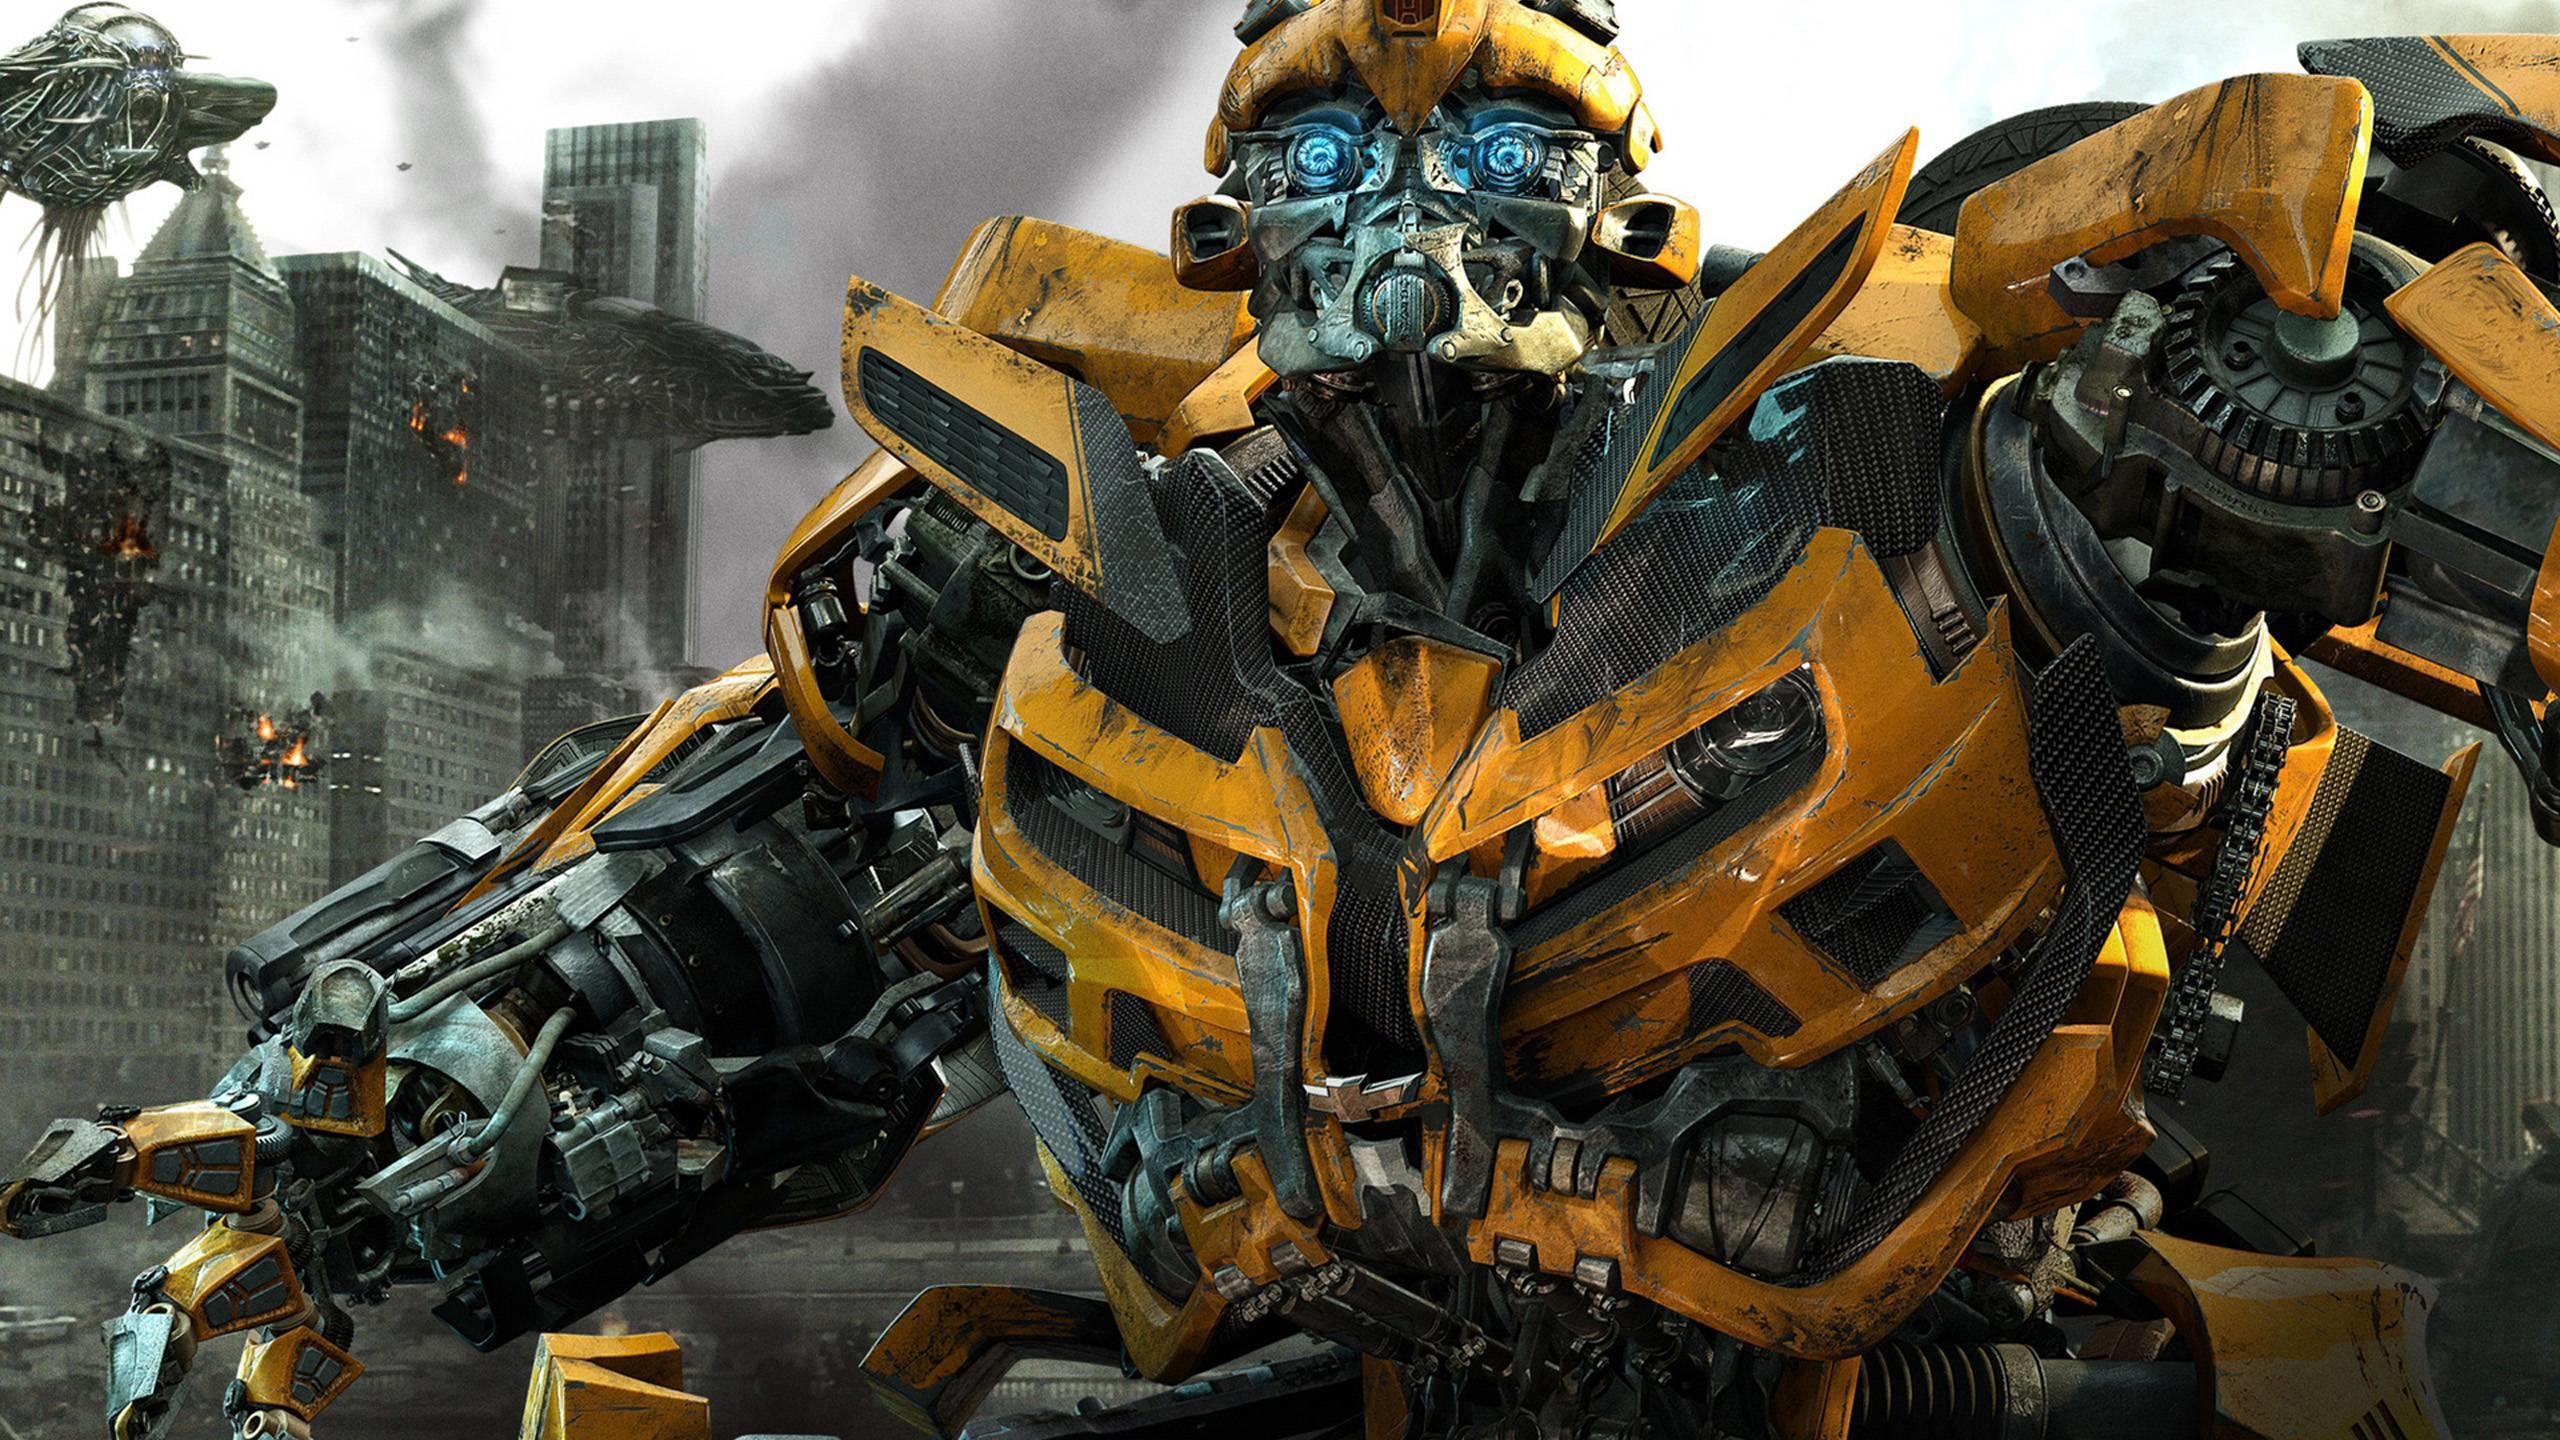 2560x1440 HD Transformers Wallpapers & Backgrounds For Free Download